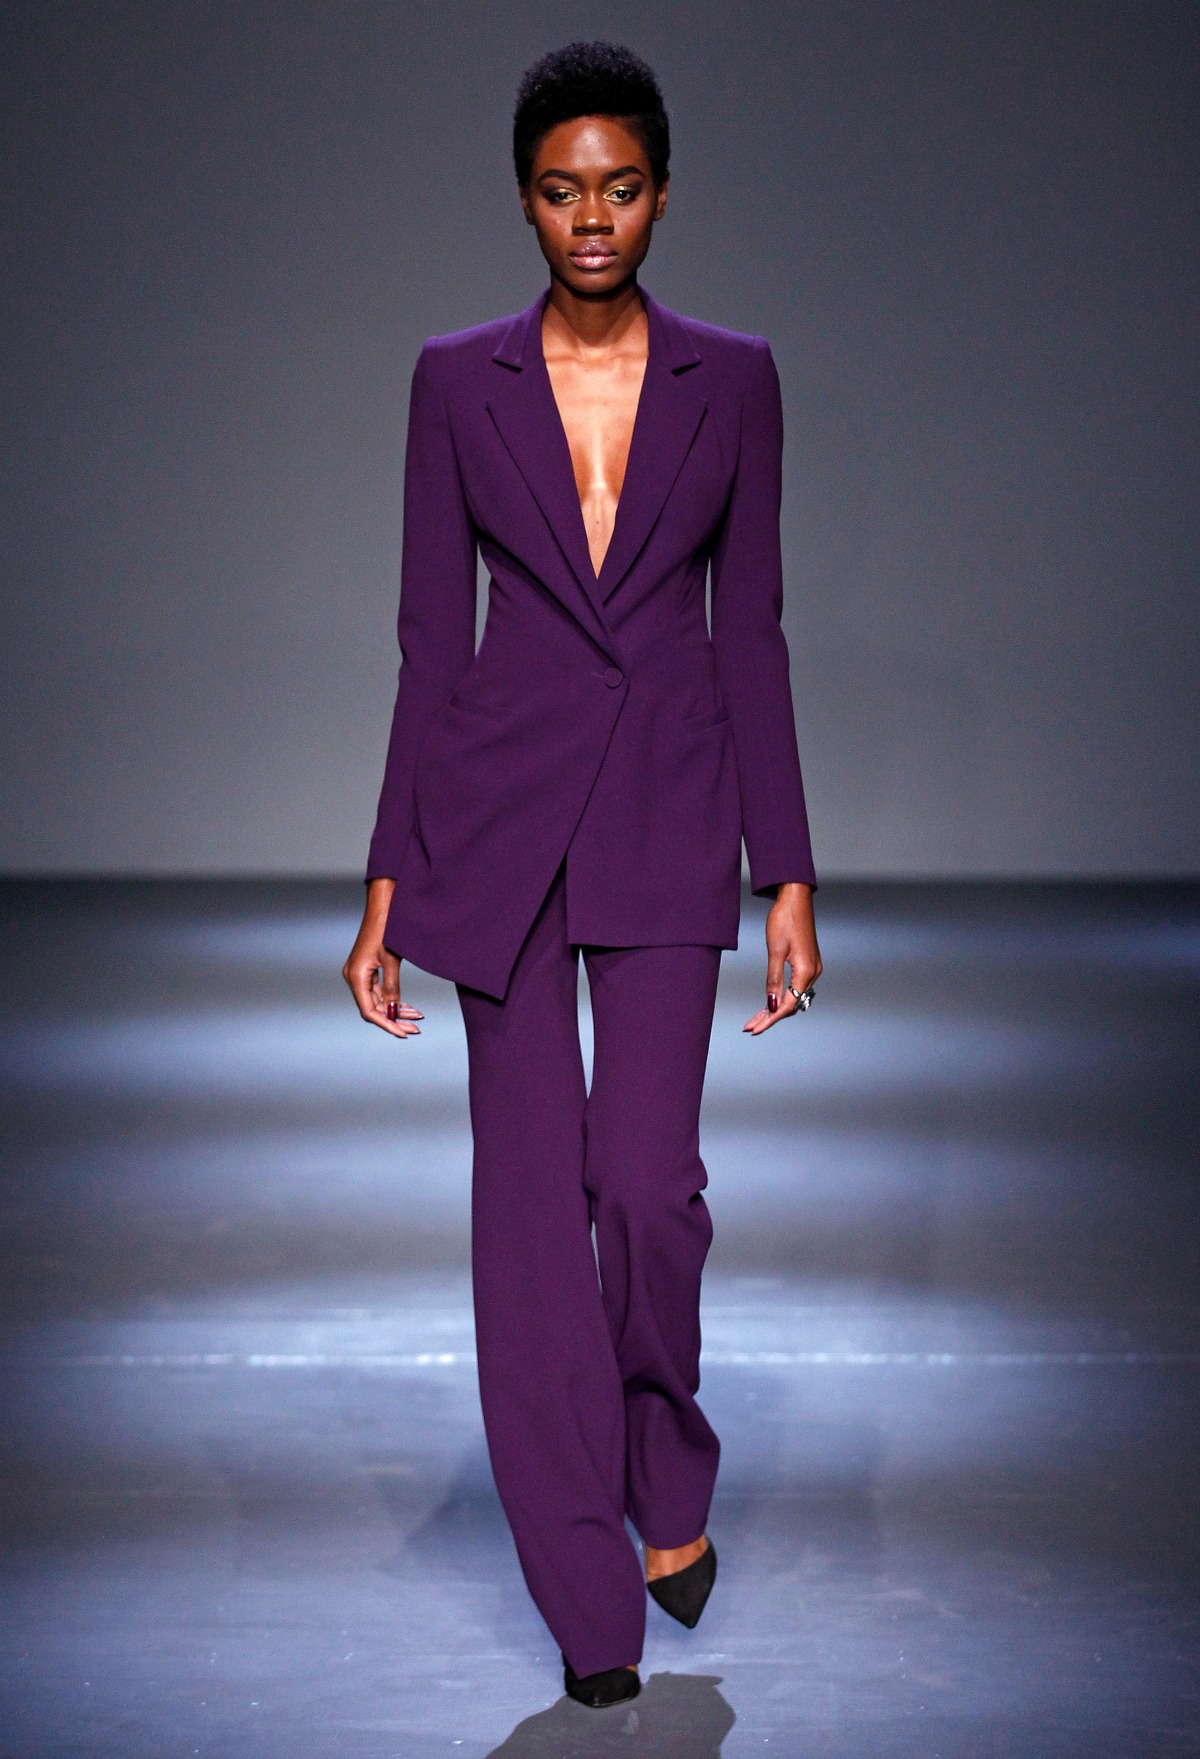 Pamella Roland Fall 2018 Runway I Amethyst Purple Power Suit #NYFW #FallFashion